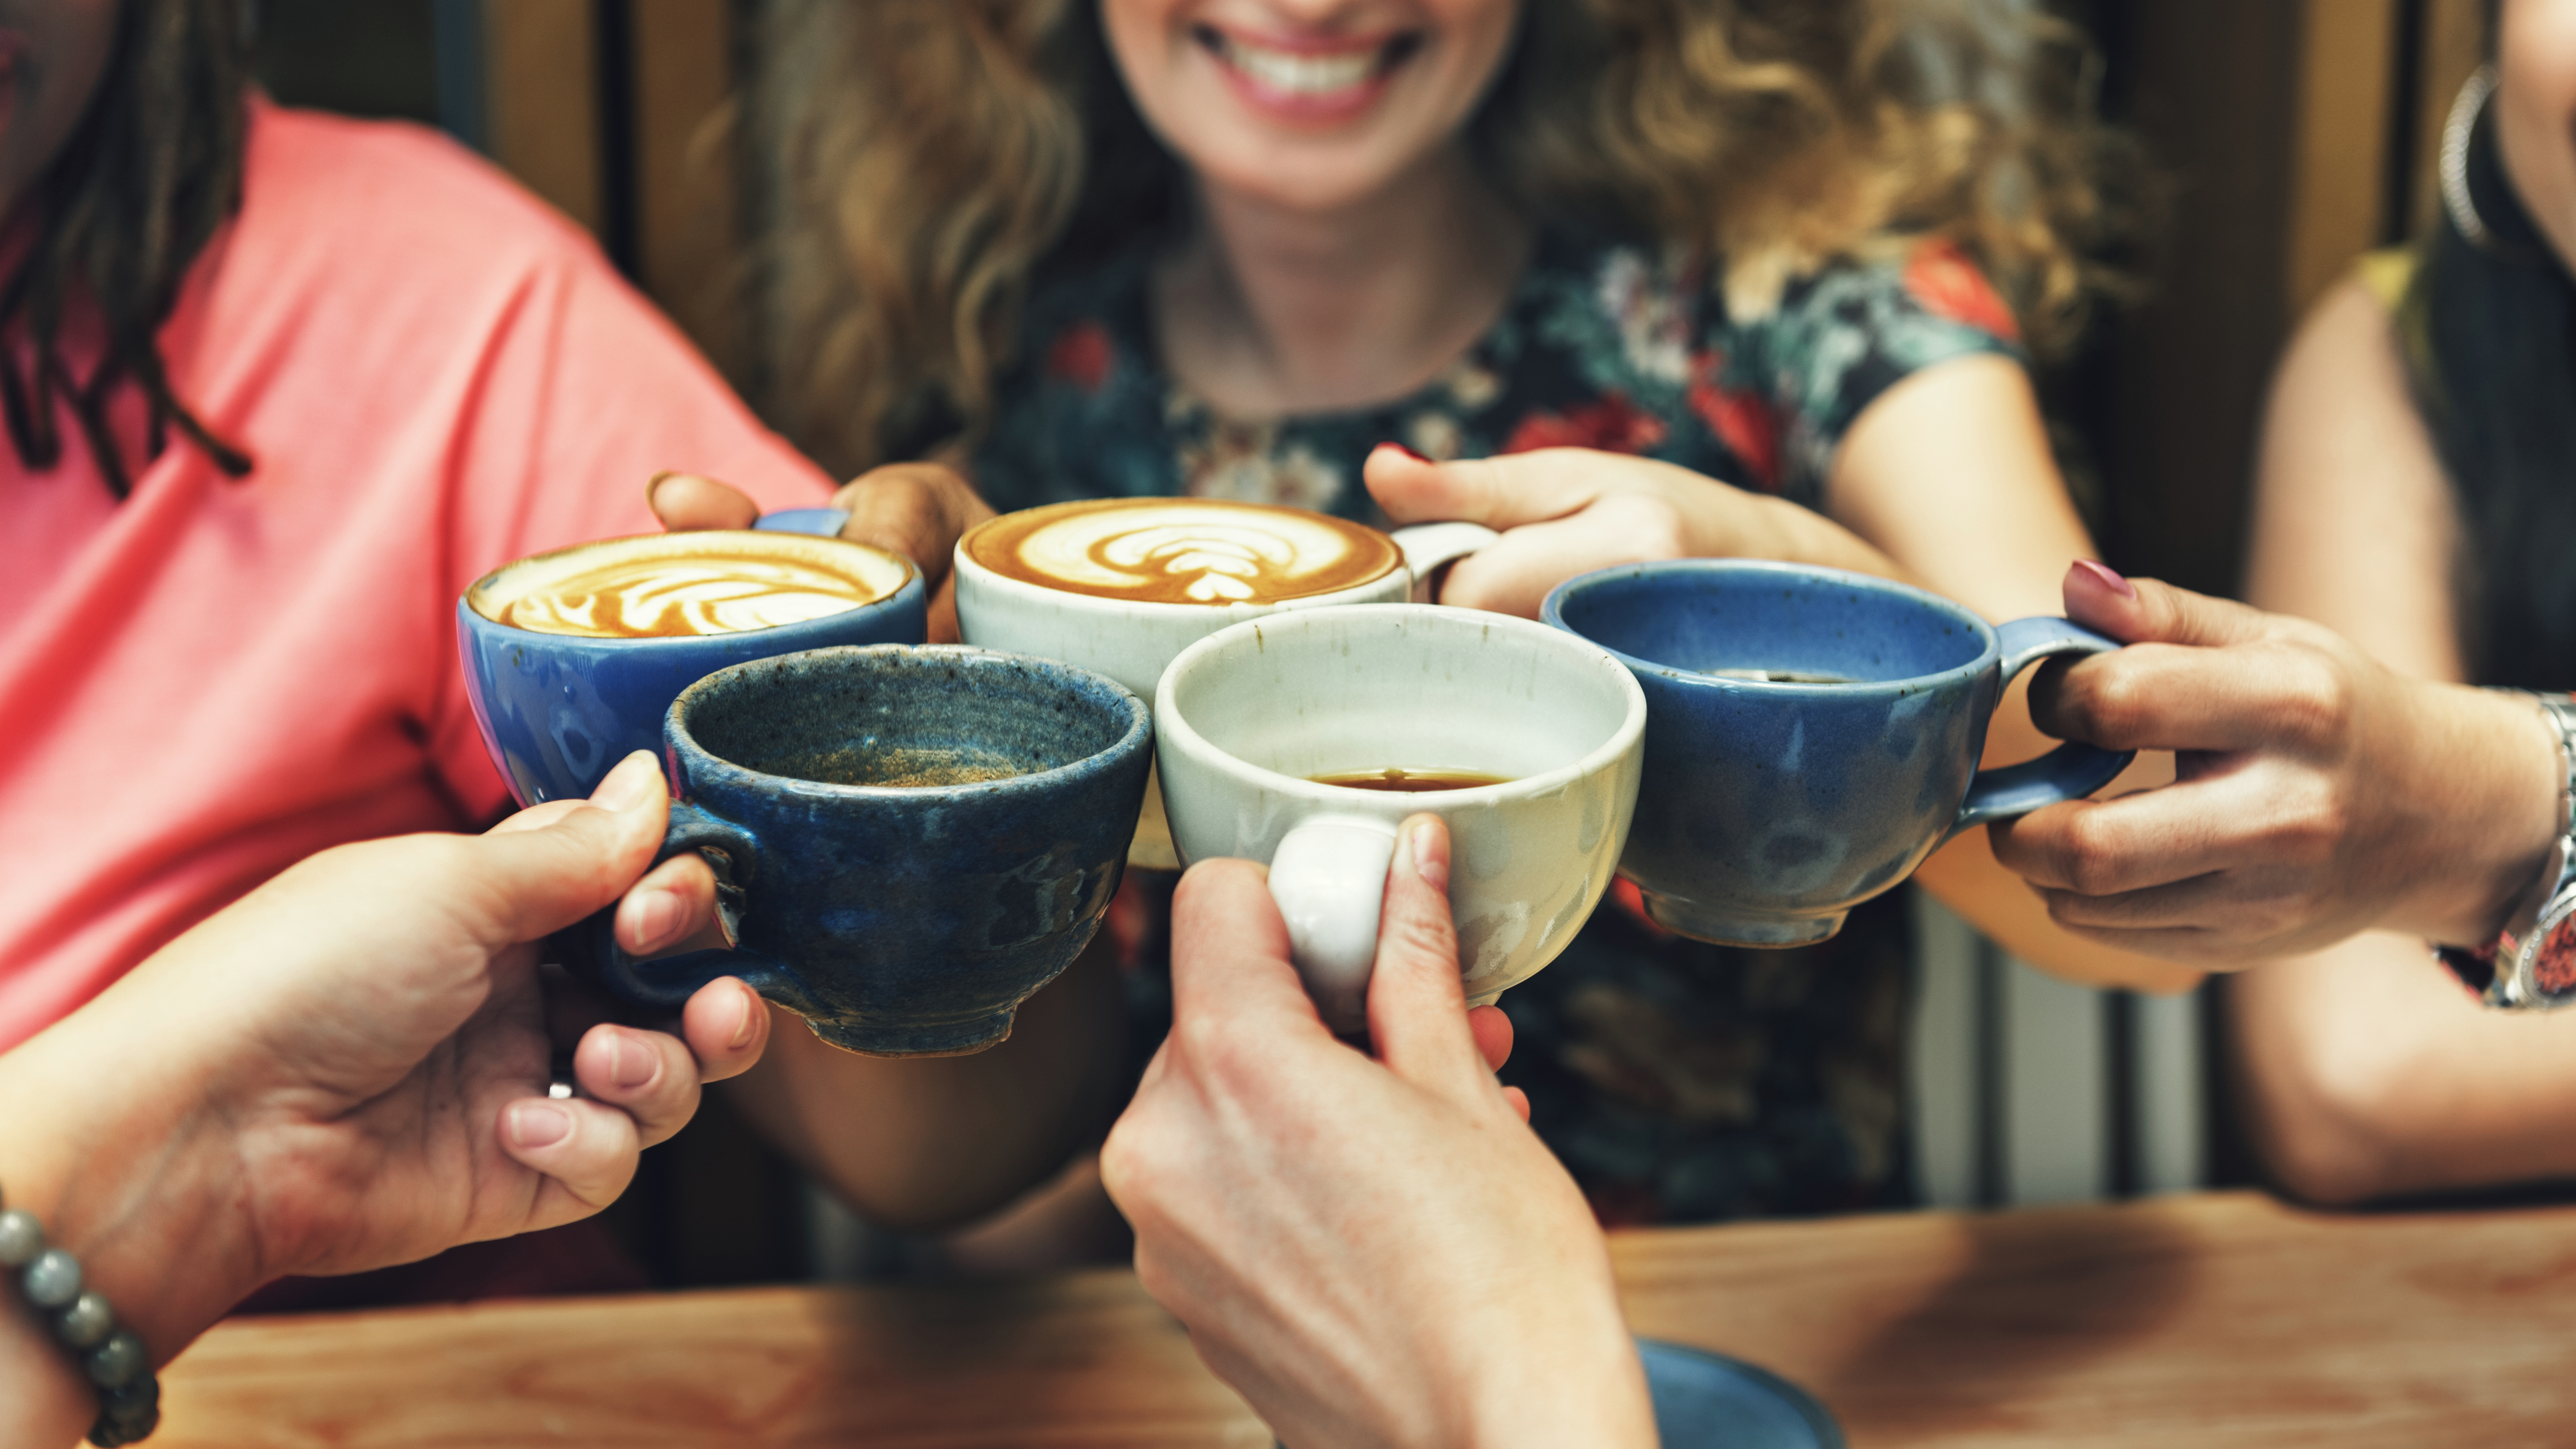 a group of happy diverse women, smiling and sharing cups of coffee together